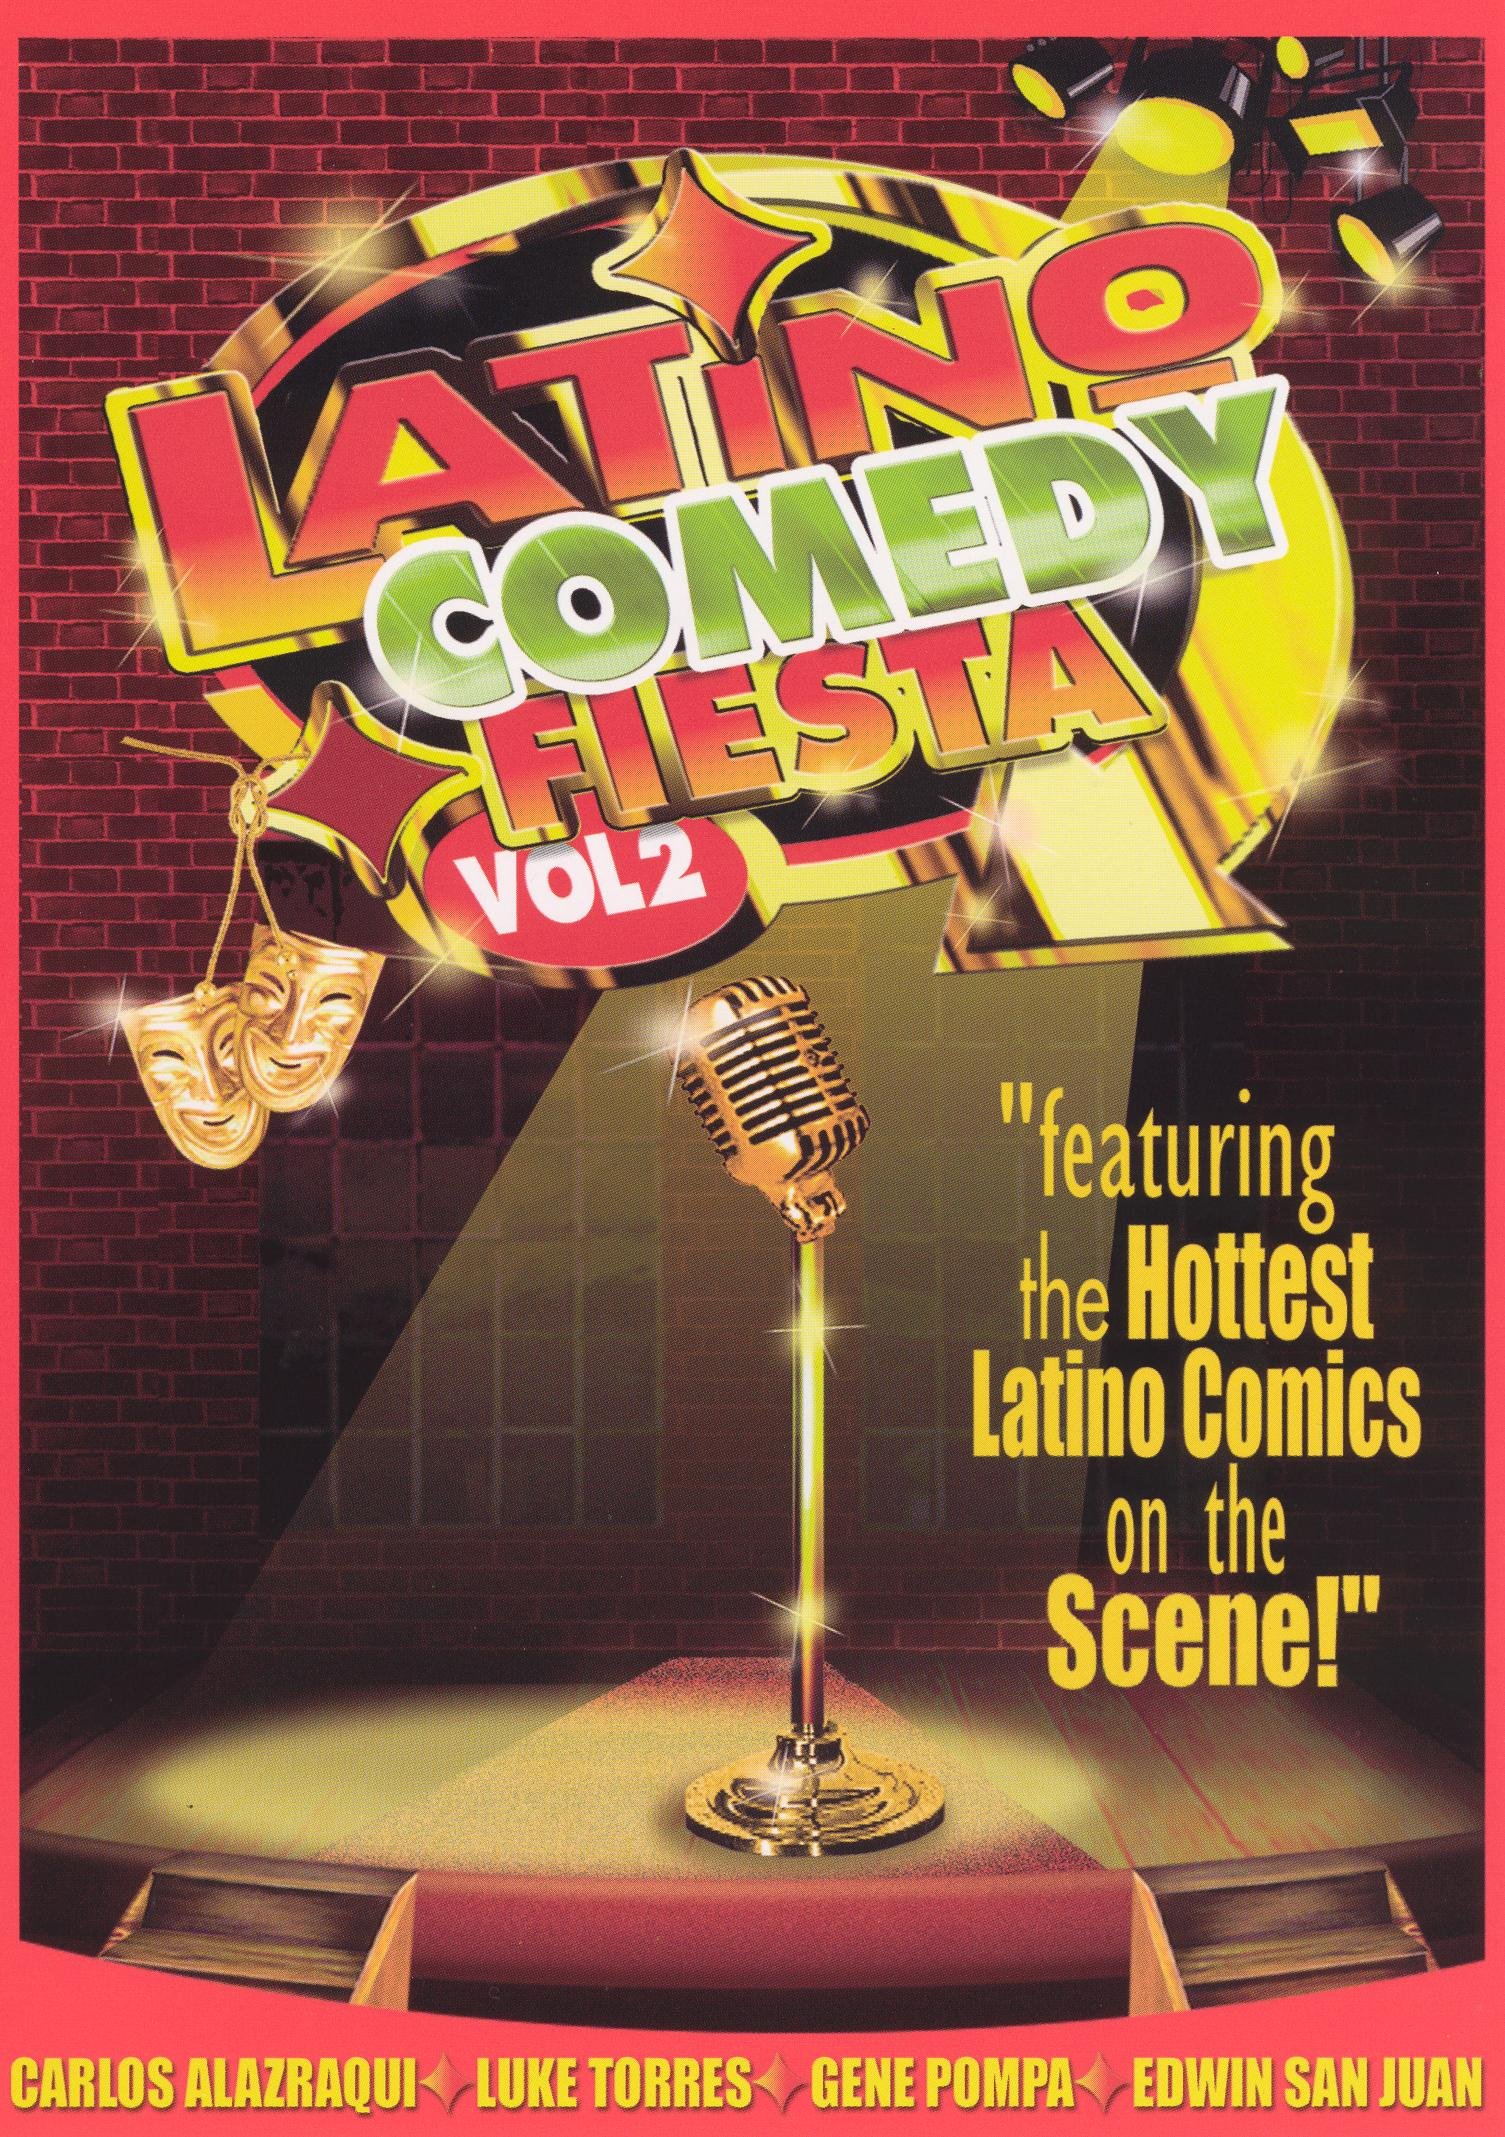 Latino Comedy Fiesta, Vol. 2